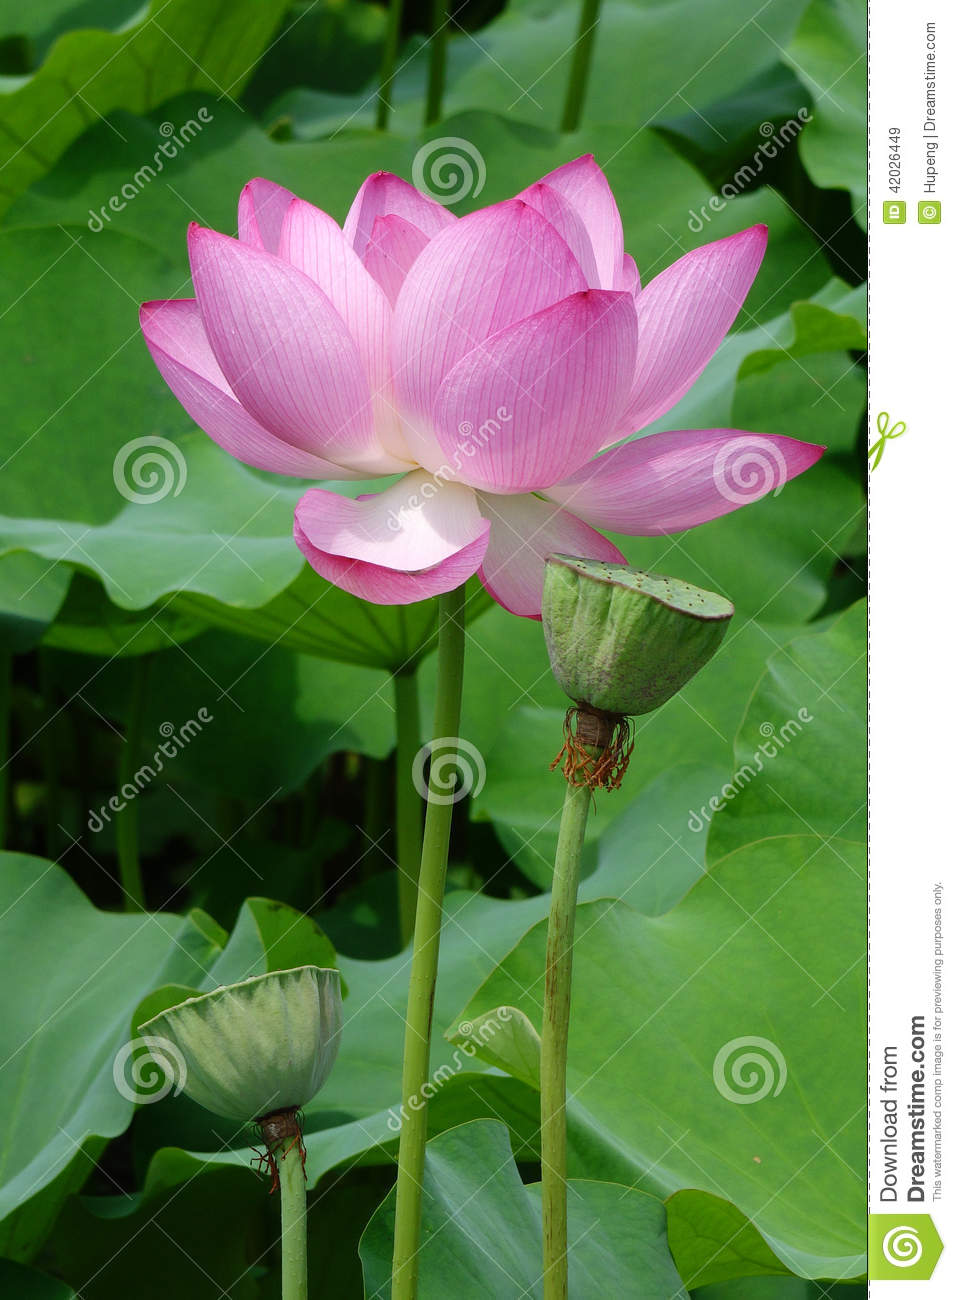 Lotus Flower With Seed Pod Stock Image Image Of Details 42026449